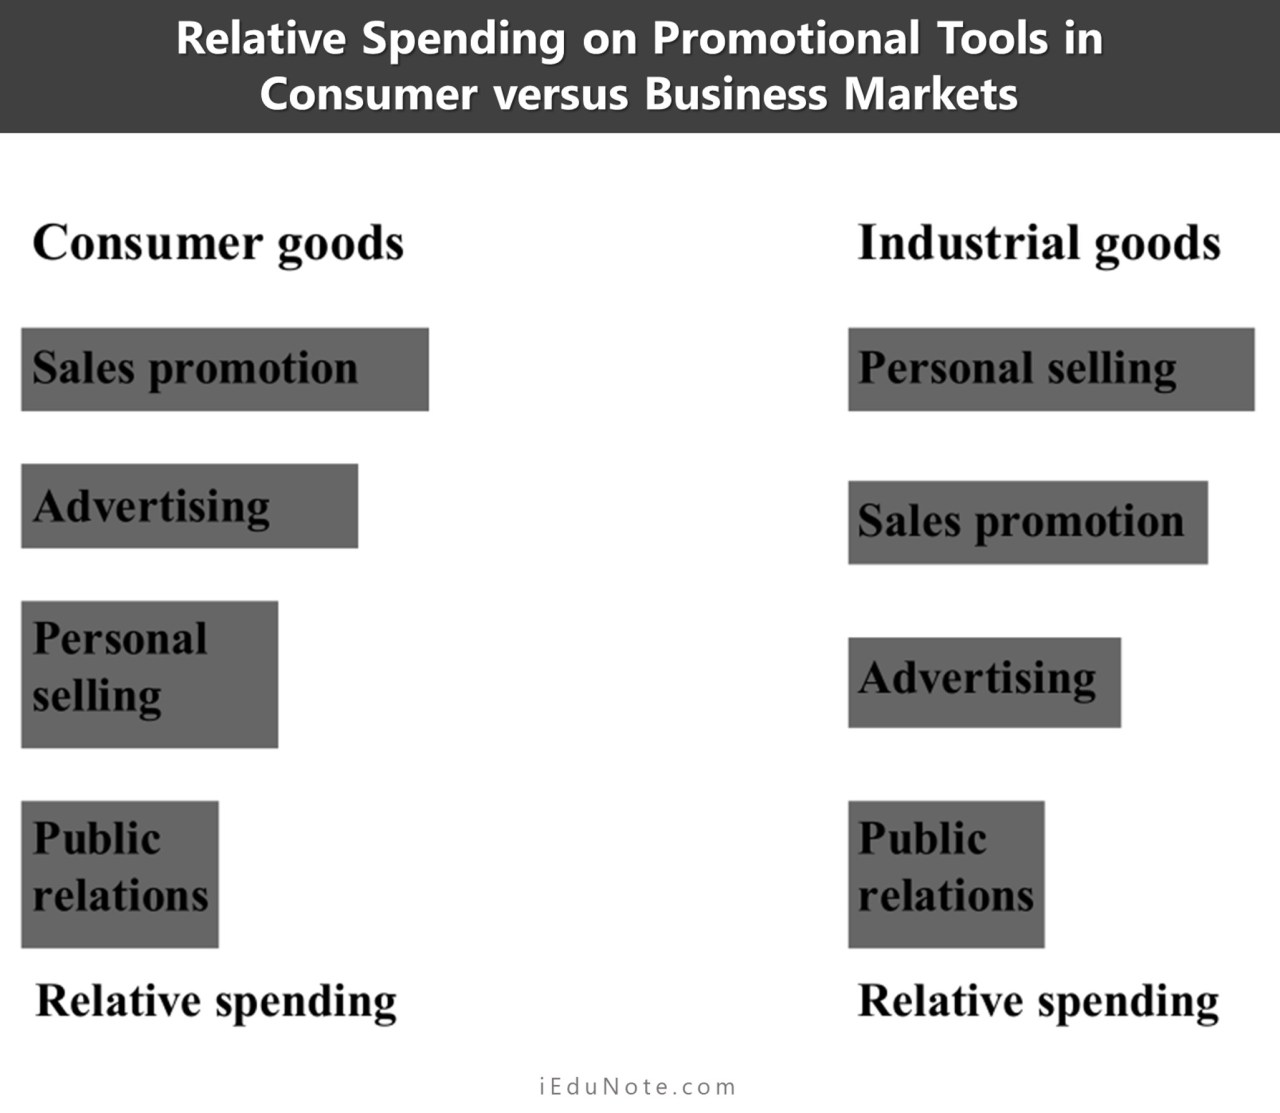 Relative Spending on Promotional Tools in Consumer versus Business Markets